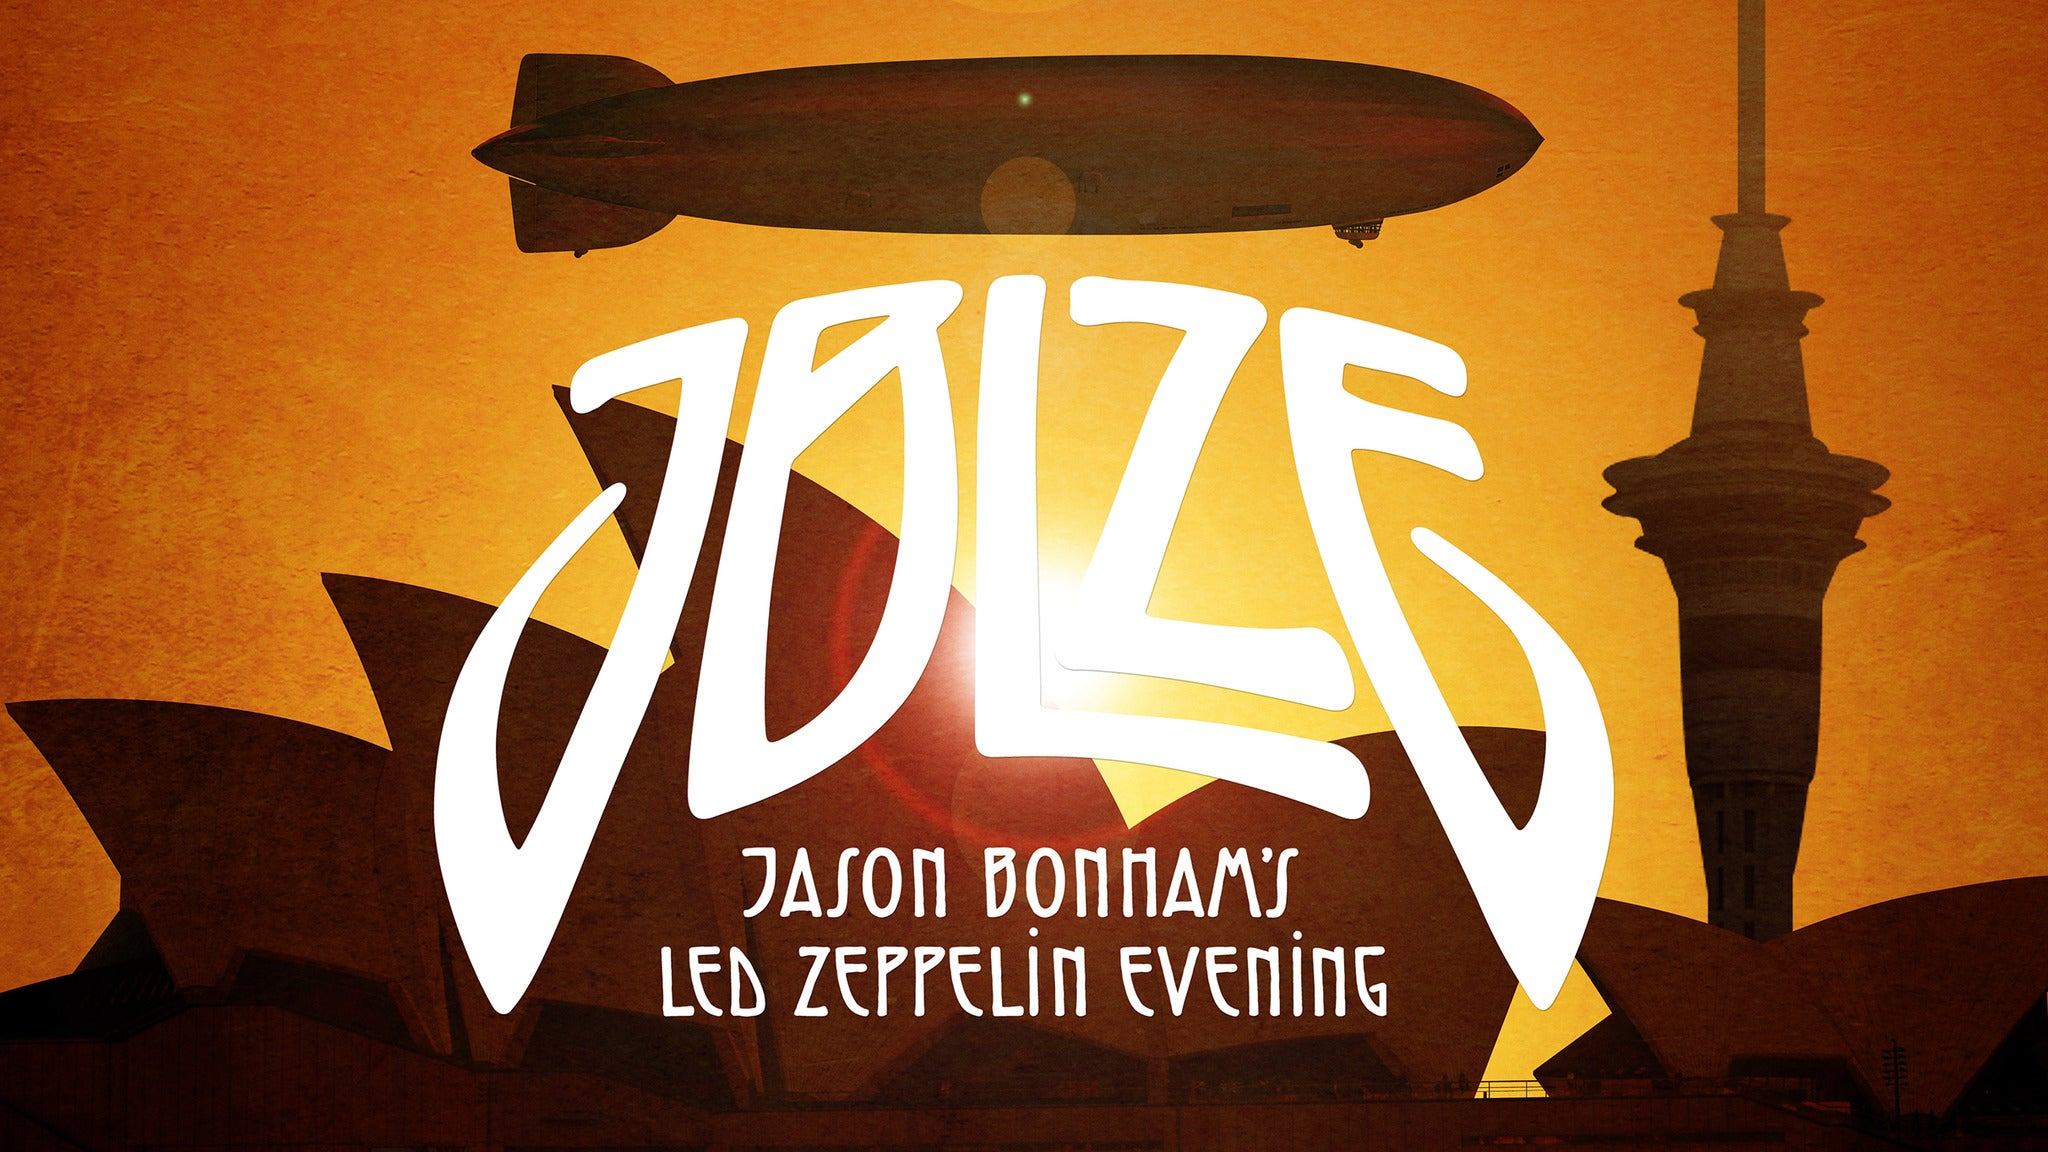 Jason Bonham's Led Zeppelin Evening at Genesee Theatre